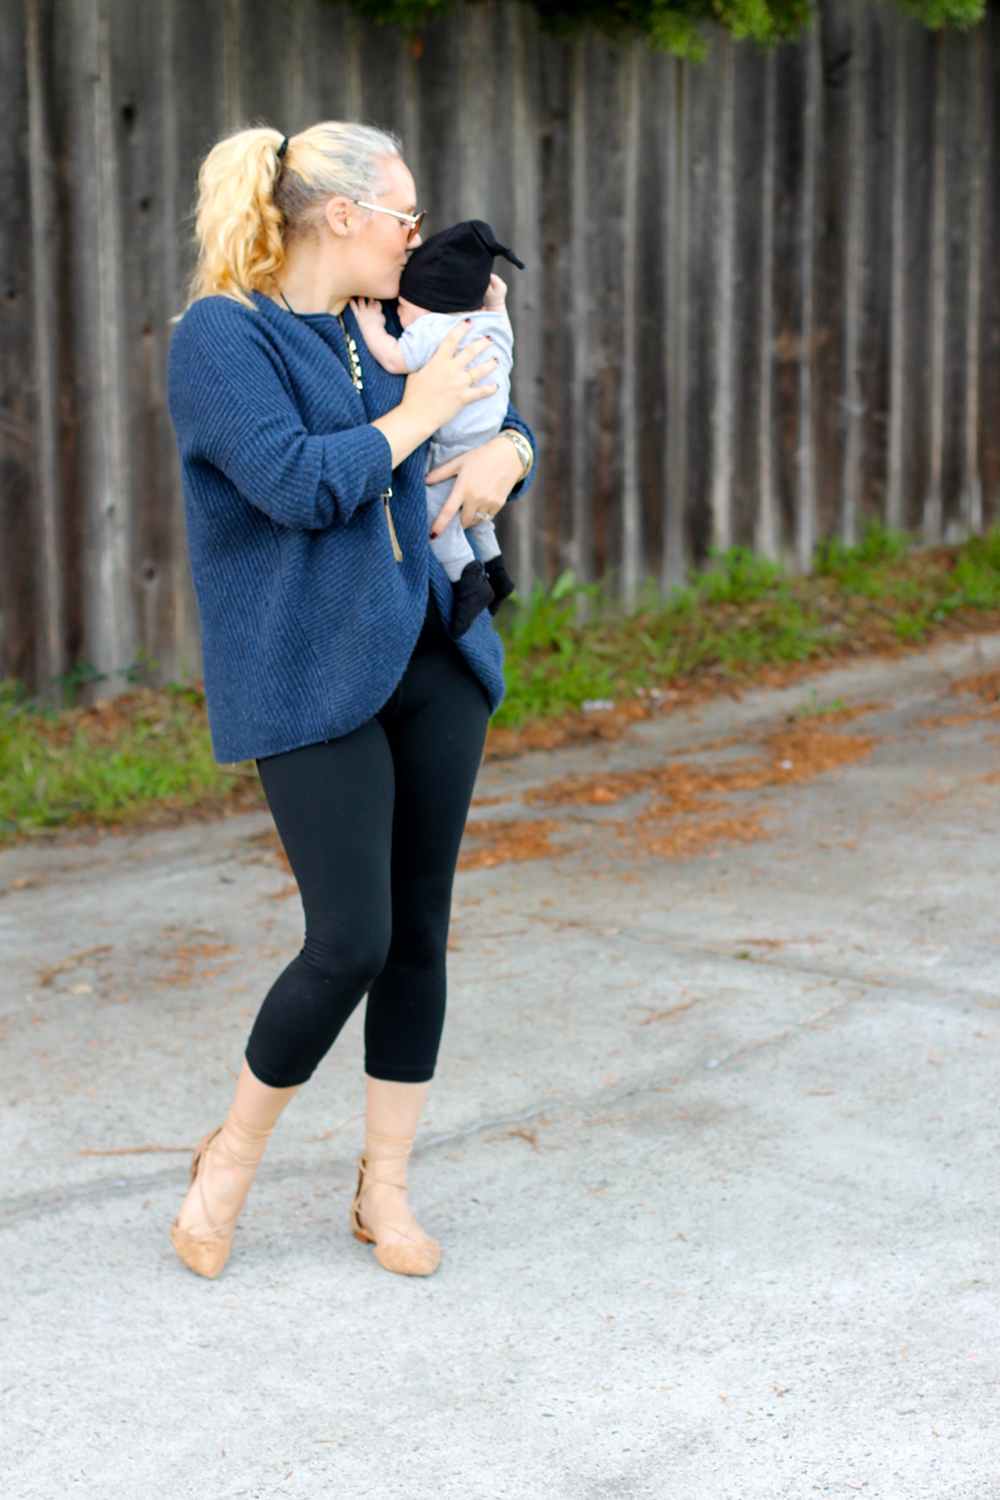 Nursing Sweater, Nursing Top, Breastfeeding Top, Mom Style, Stylish Mother, Have Need Want